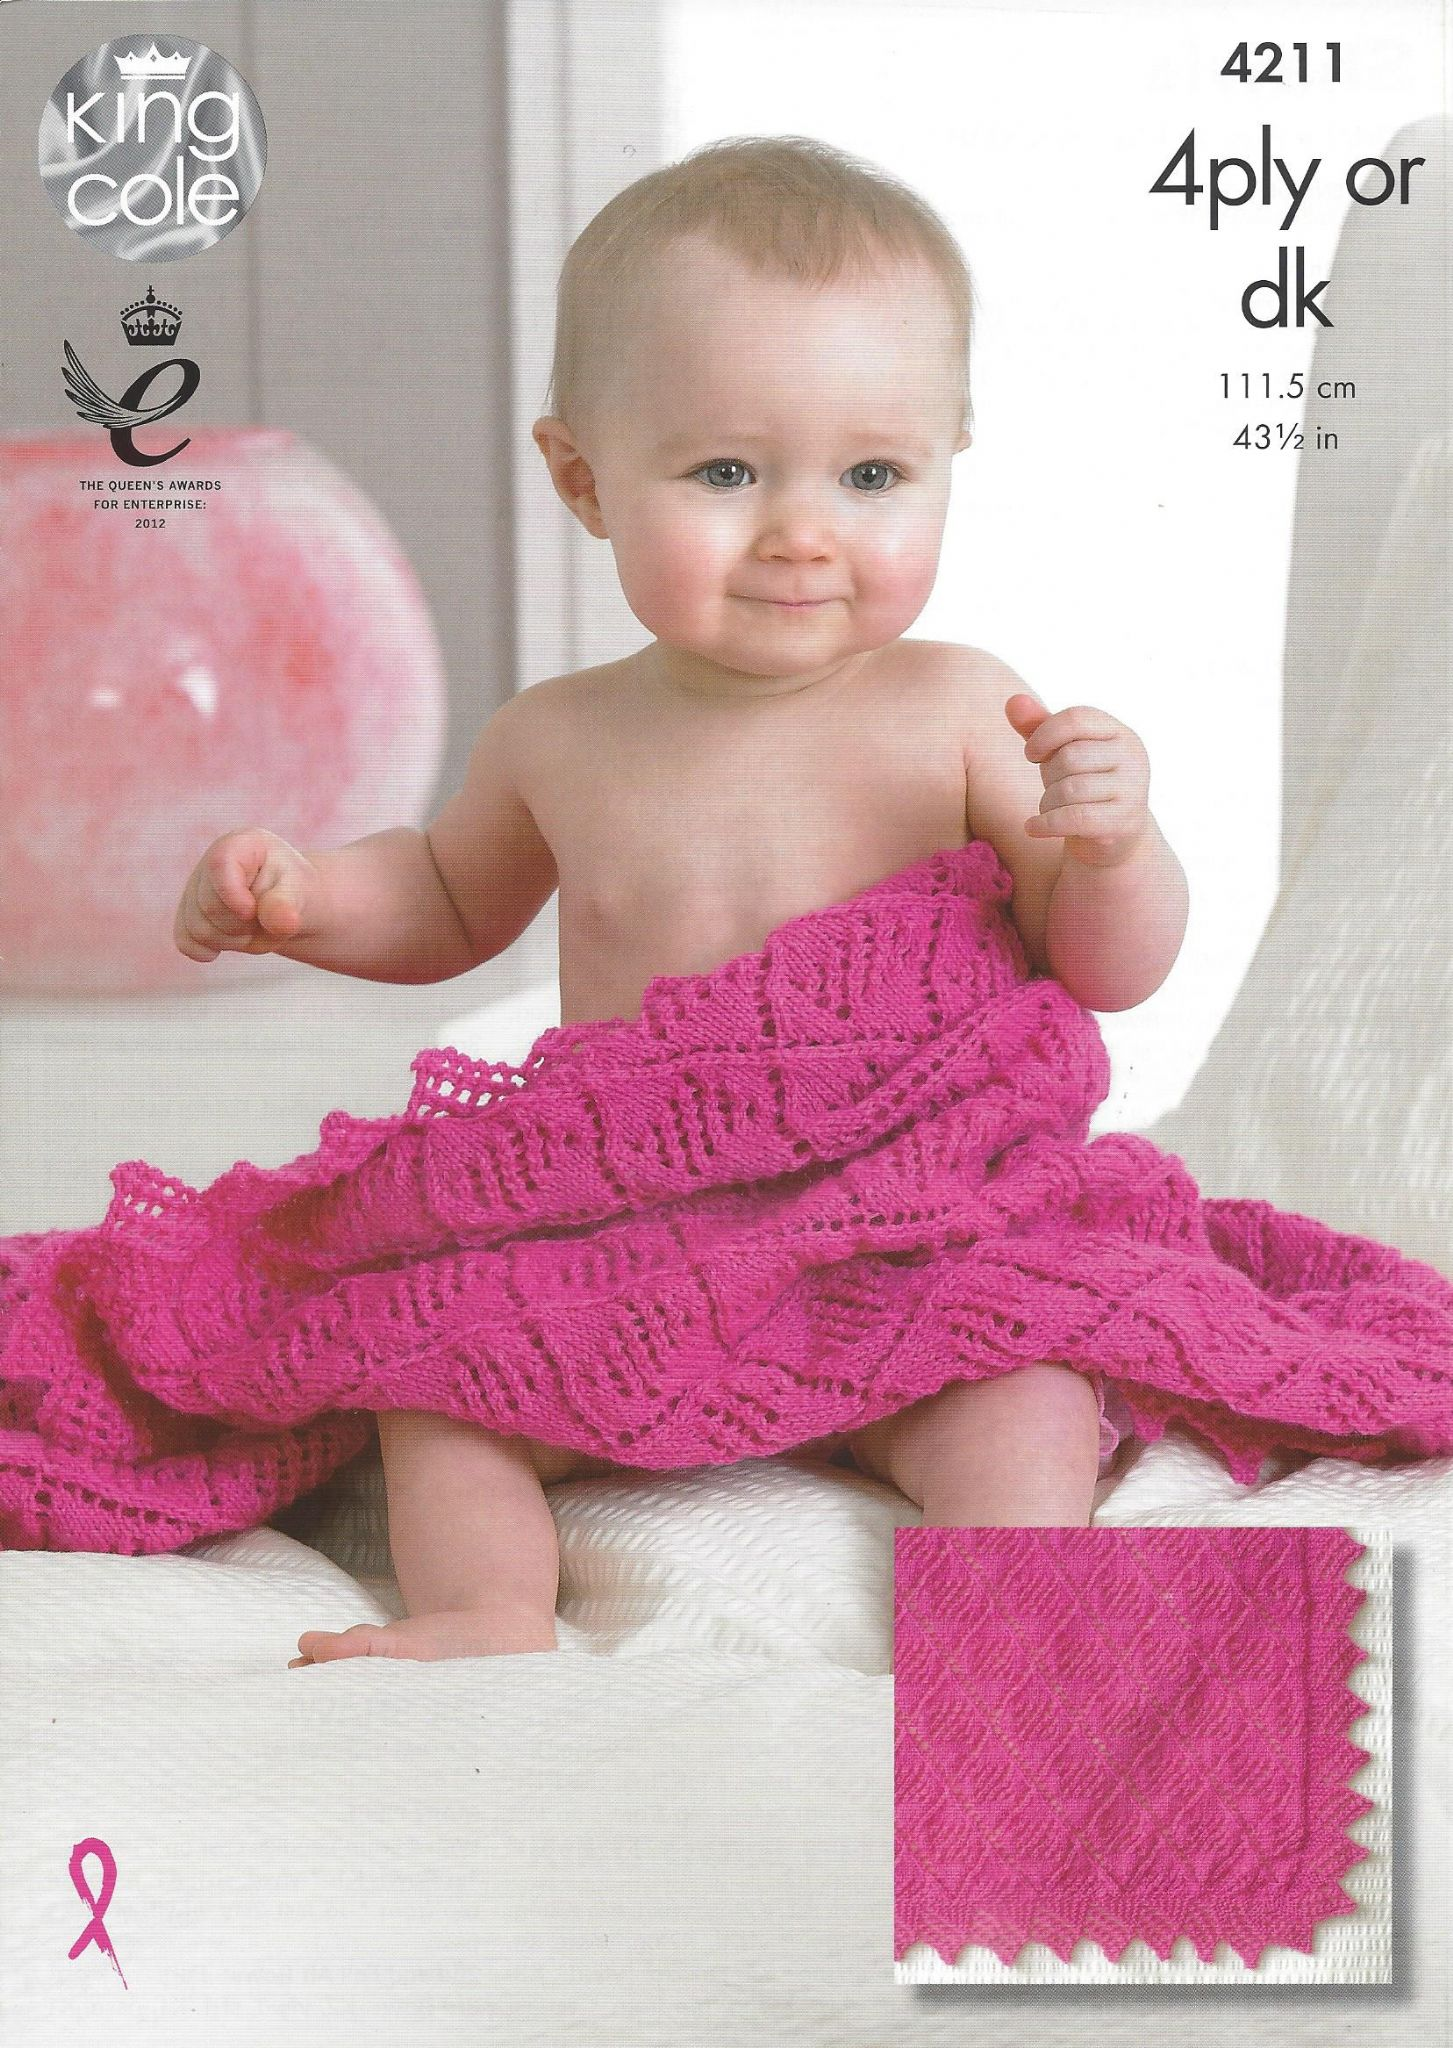 King Cole Baby DK & 4ply Knitting Pattern - 4211 Shawls